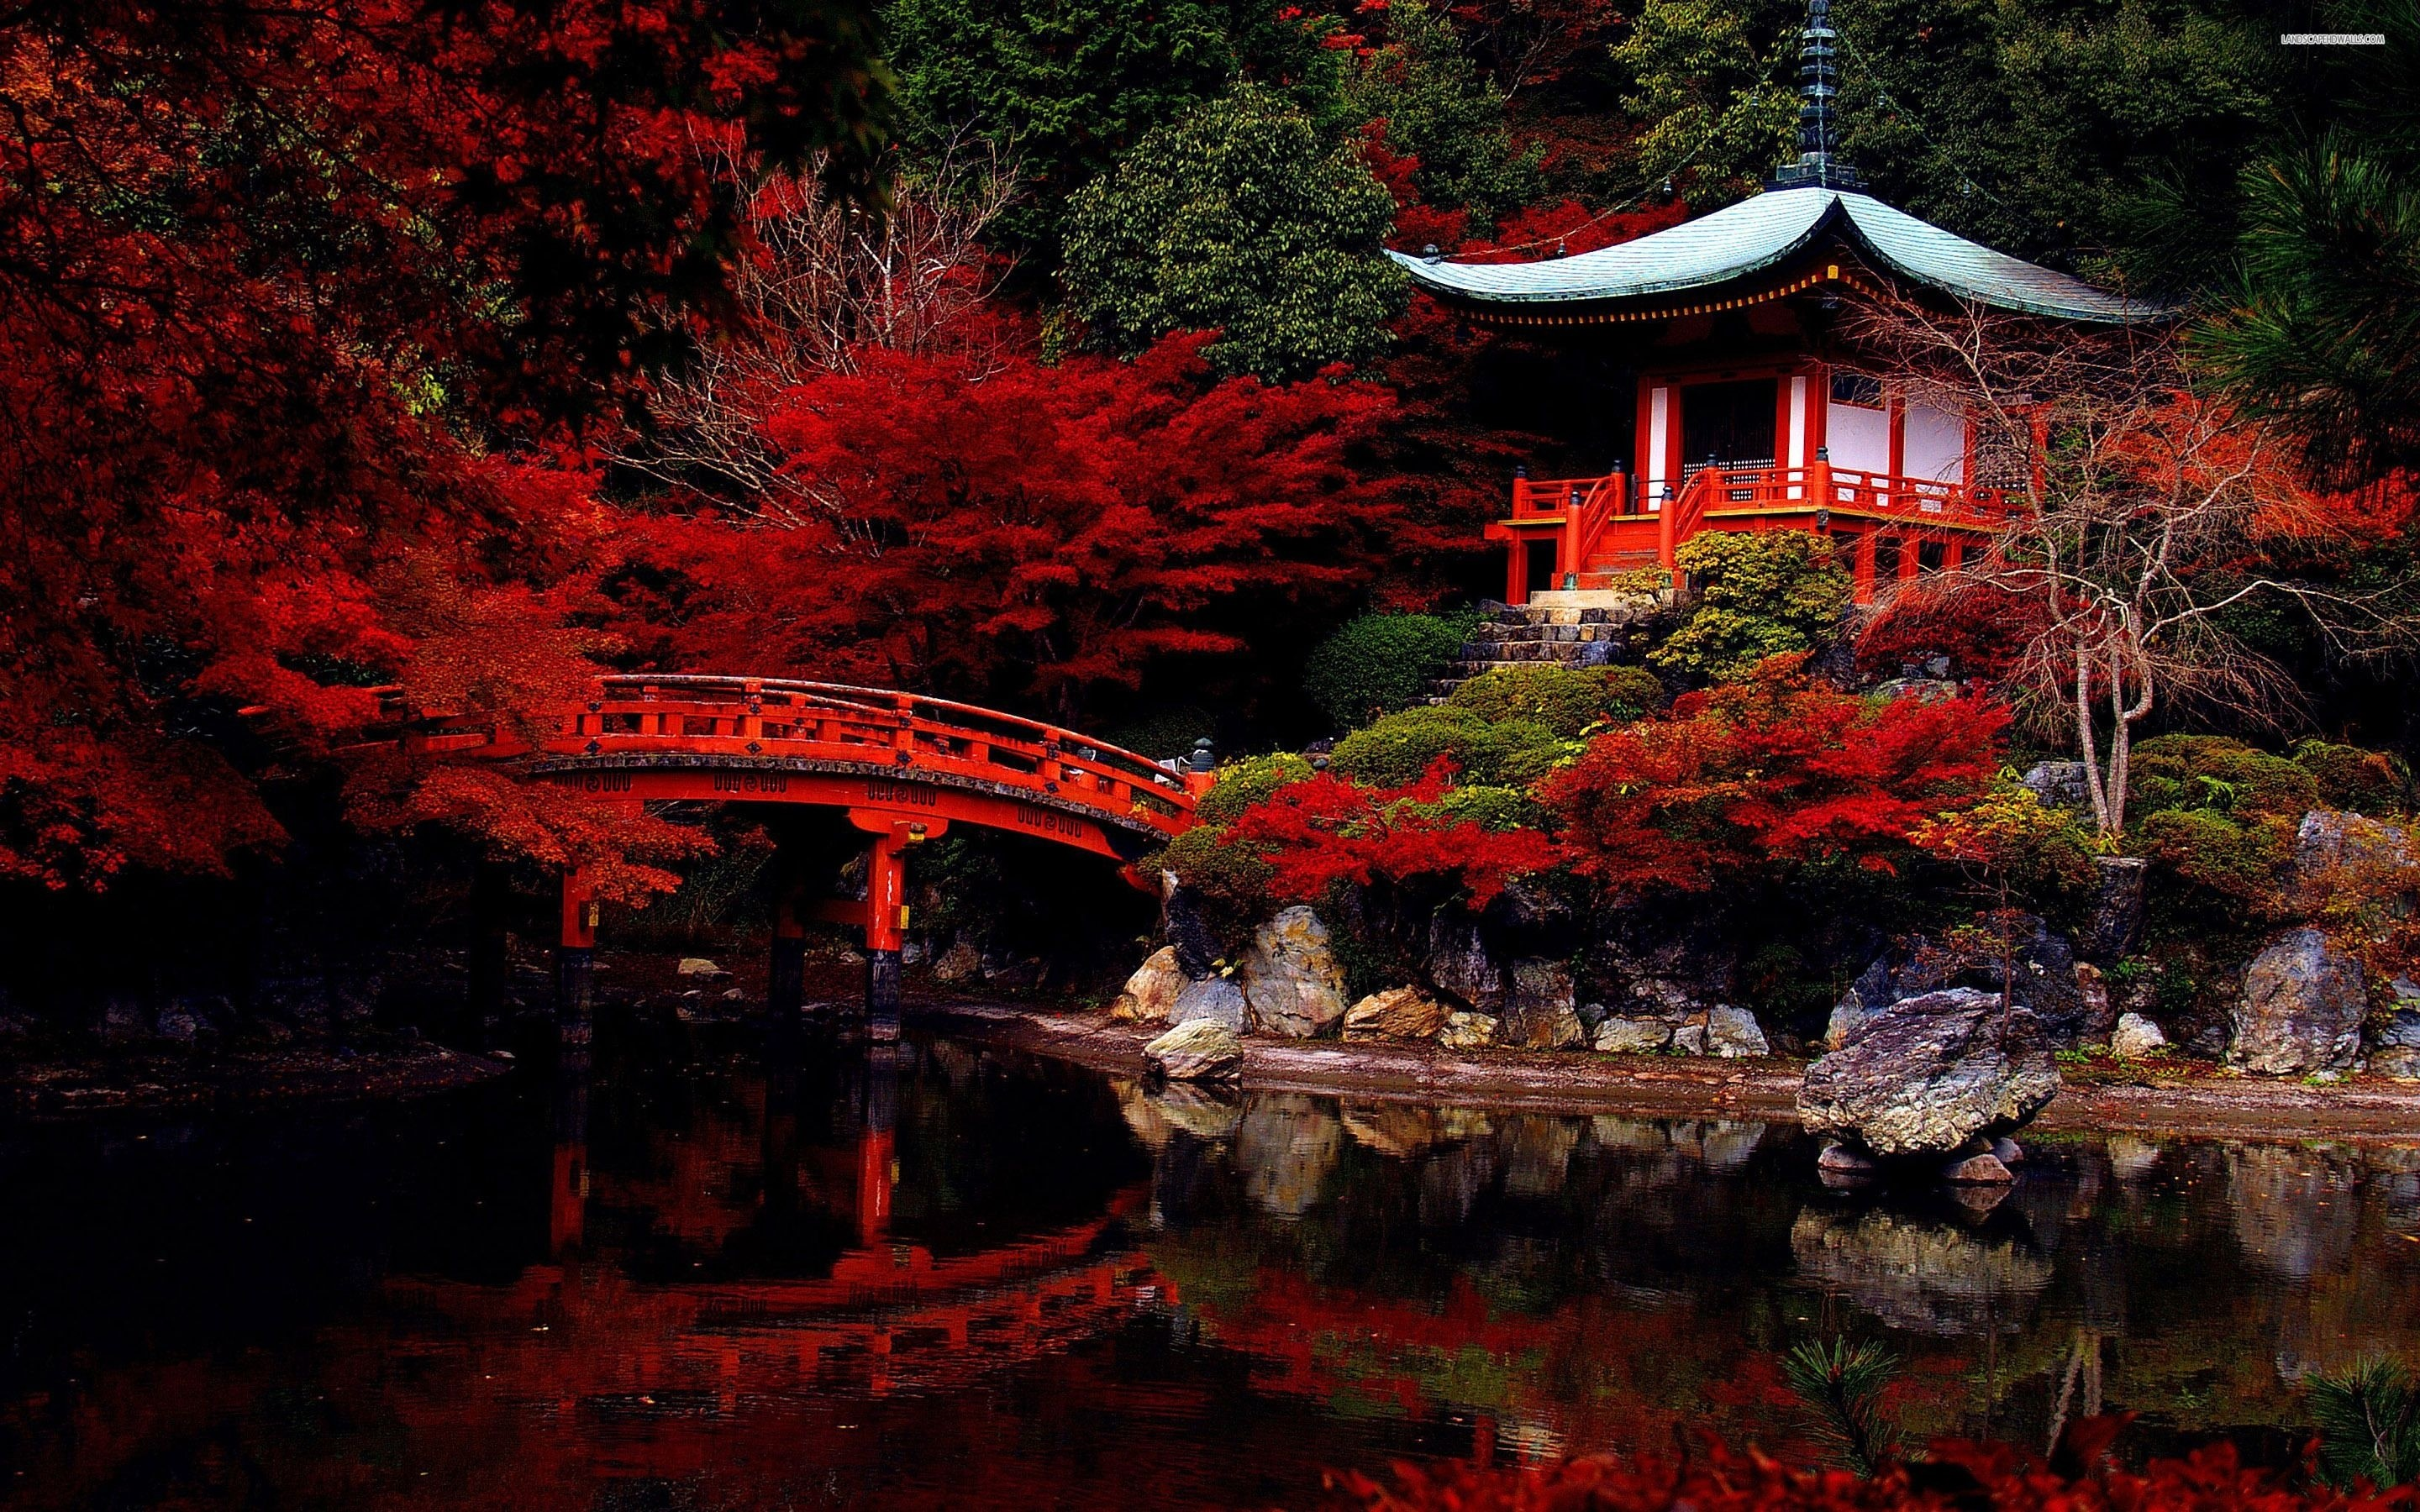 Res: 2880x1800, Title : autumn in the japanese garden wallpaper | landscapes wallpapers.  Dimension : 2880 x 1800. File Type : JPG/JPEG